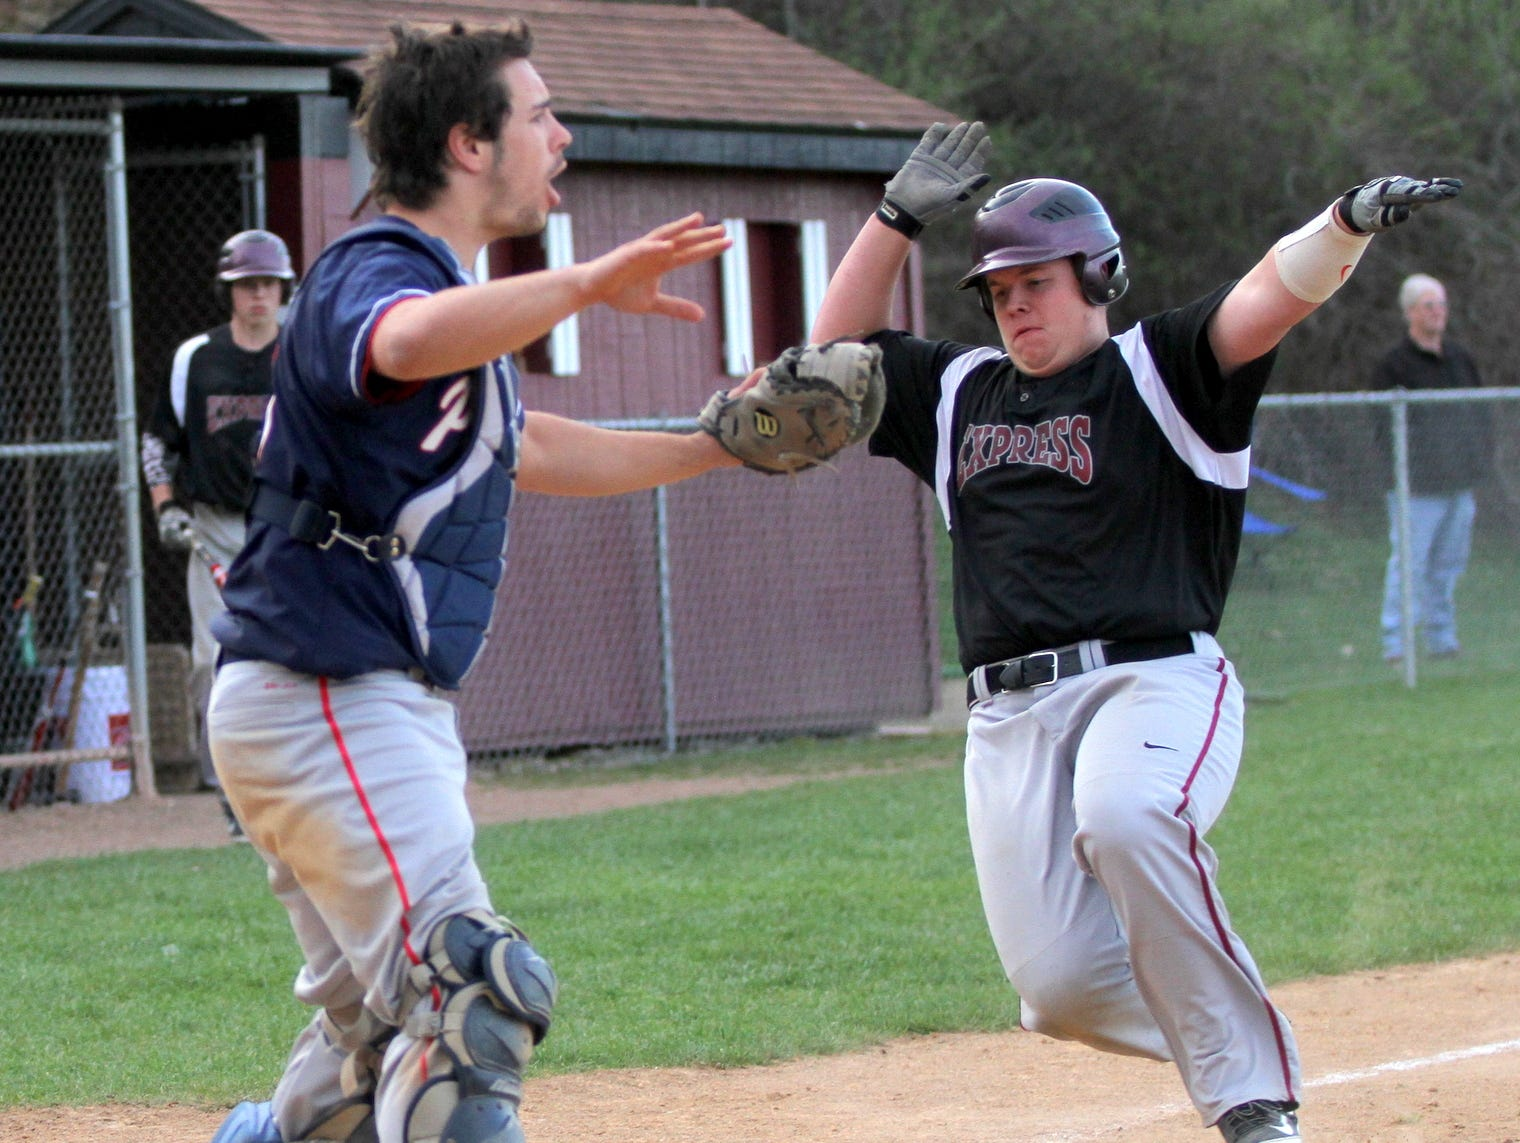 Elmira's Cole Berry scores the tying run in the seventh inning as Binghamton catcher Dan Walsh waves off the throw in Thursday's STAC game at Ernie Davis Academy.